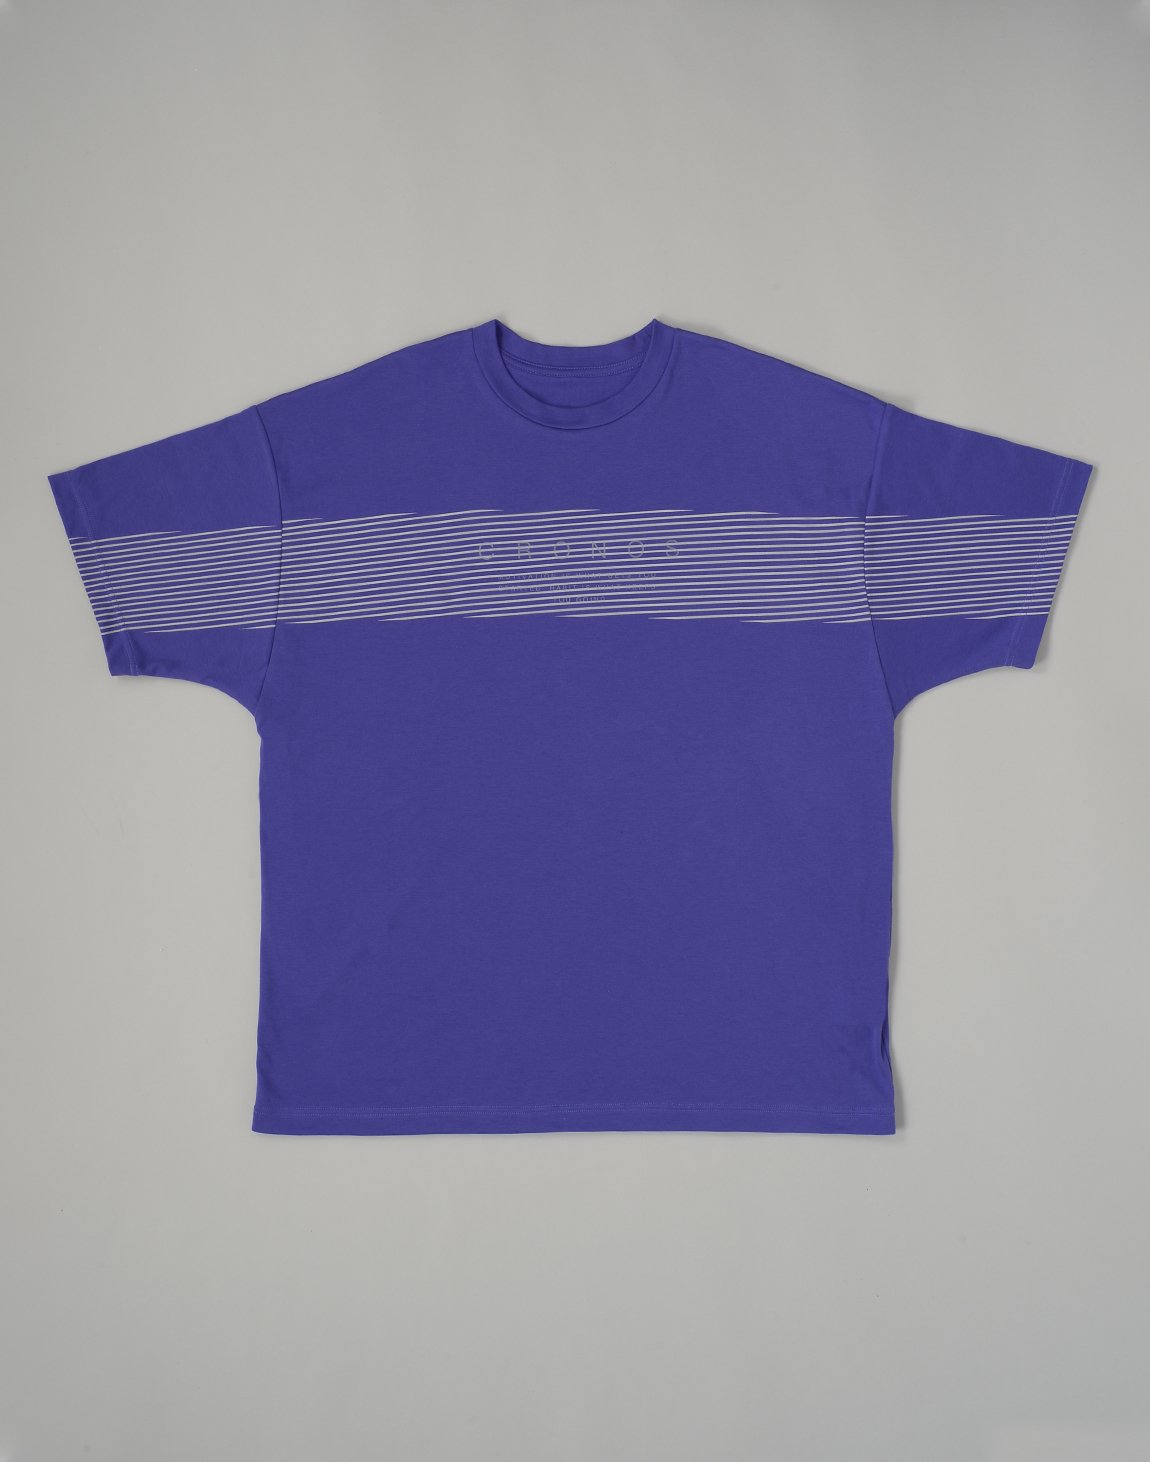 CRONOS PARALLEL LINE LOGO OVERSIZE T-SHIRTS【PURPLE】